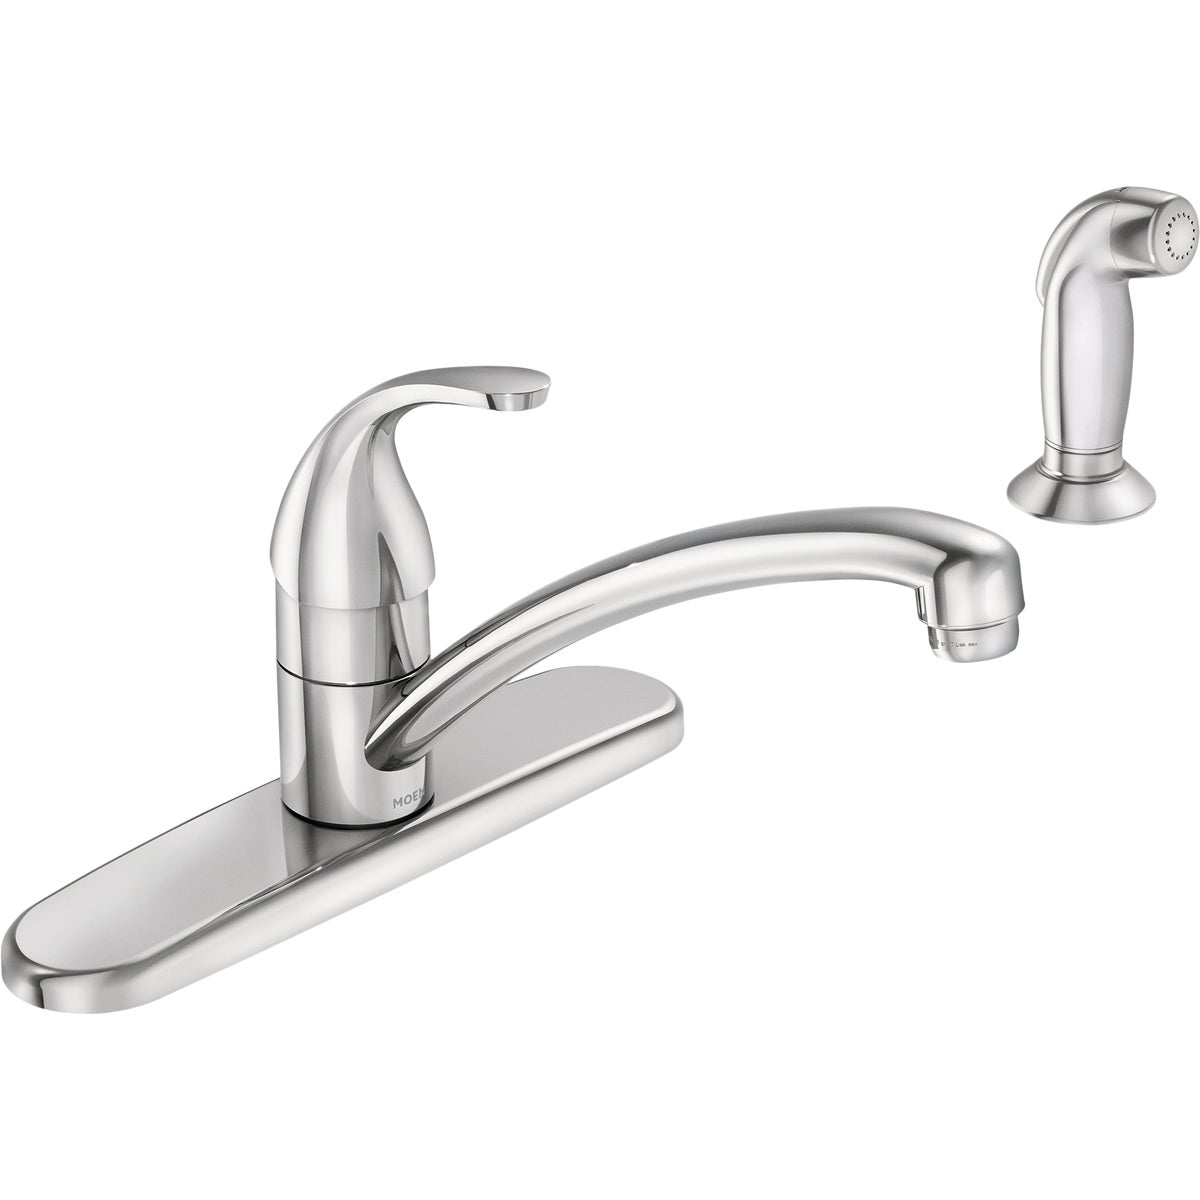 Moen CA87551 Adler Single Handle Faucet with Lever Handle and 9'' Spout, Chrome